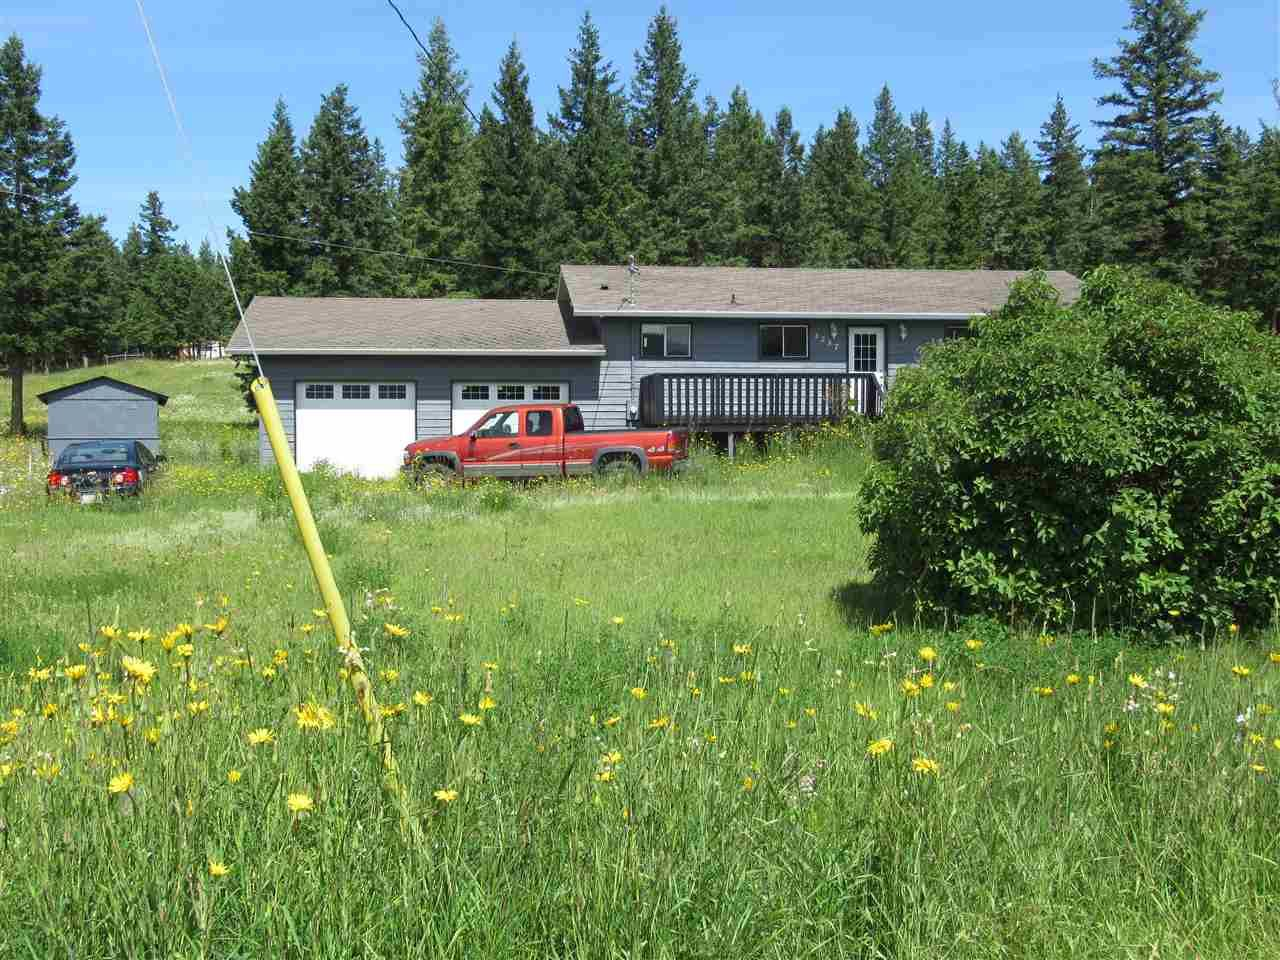 Photo 22: Photos: 3257 HINSCHE Road in Williams Lake: Williams Lake - Rural East House for sale (Williams Lake (Zone 27))  : MLS®# R2477340